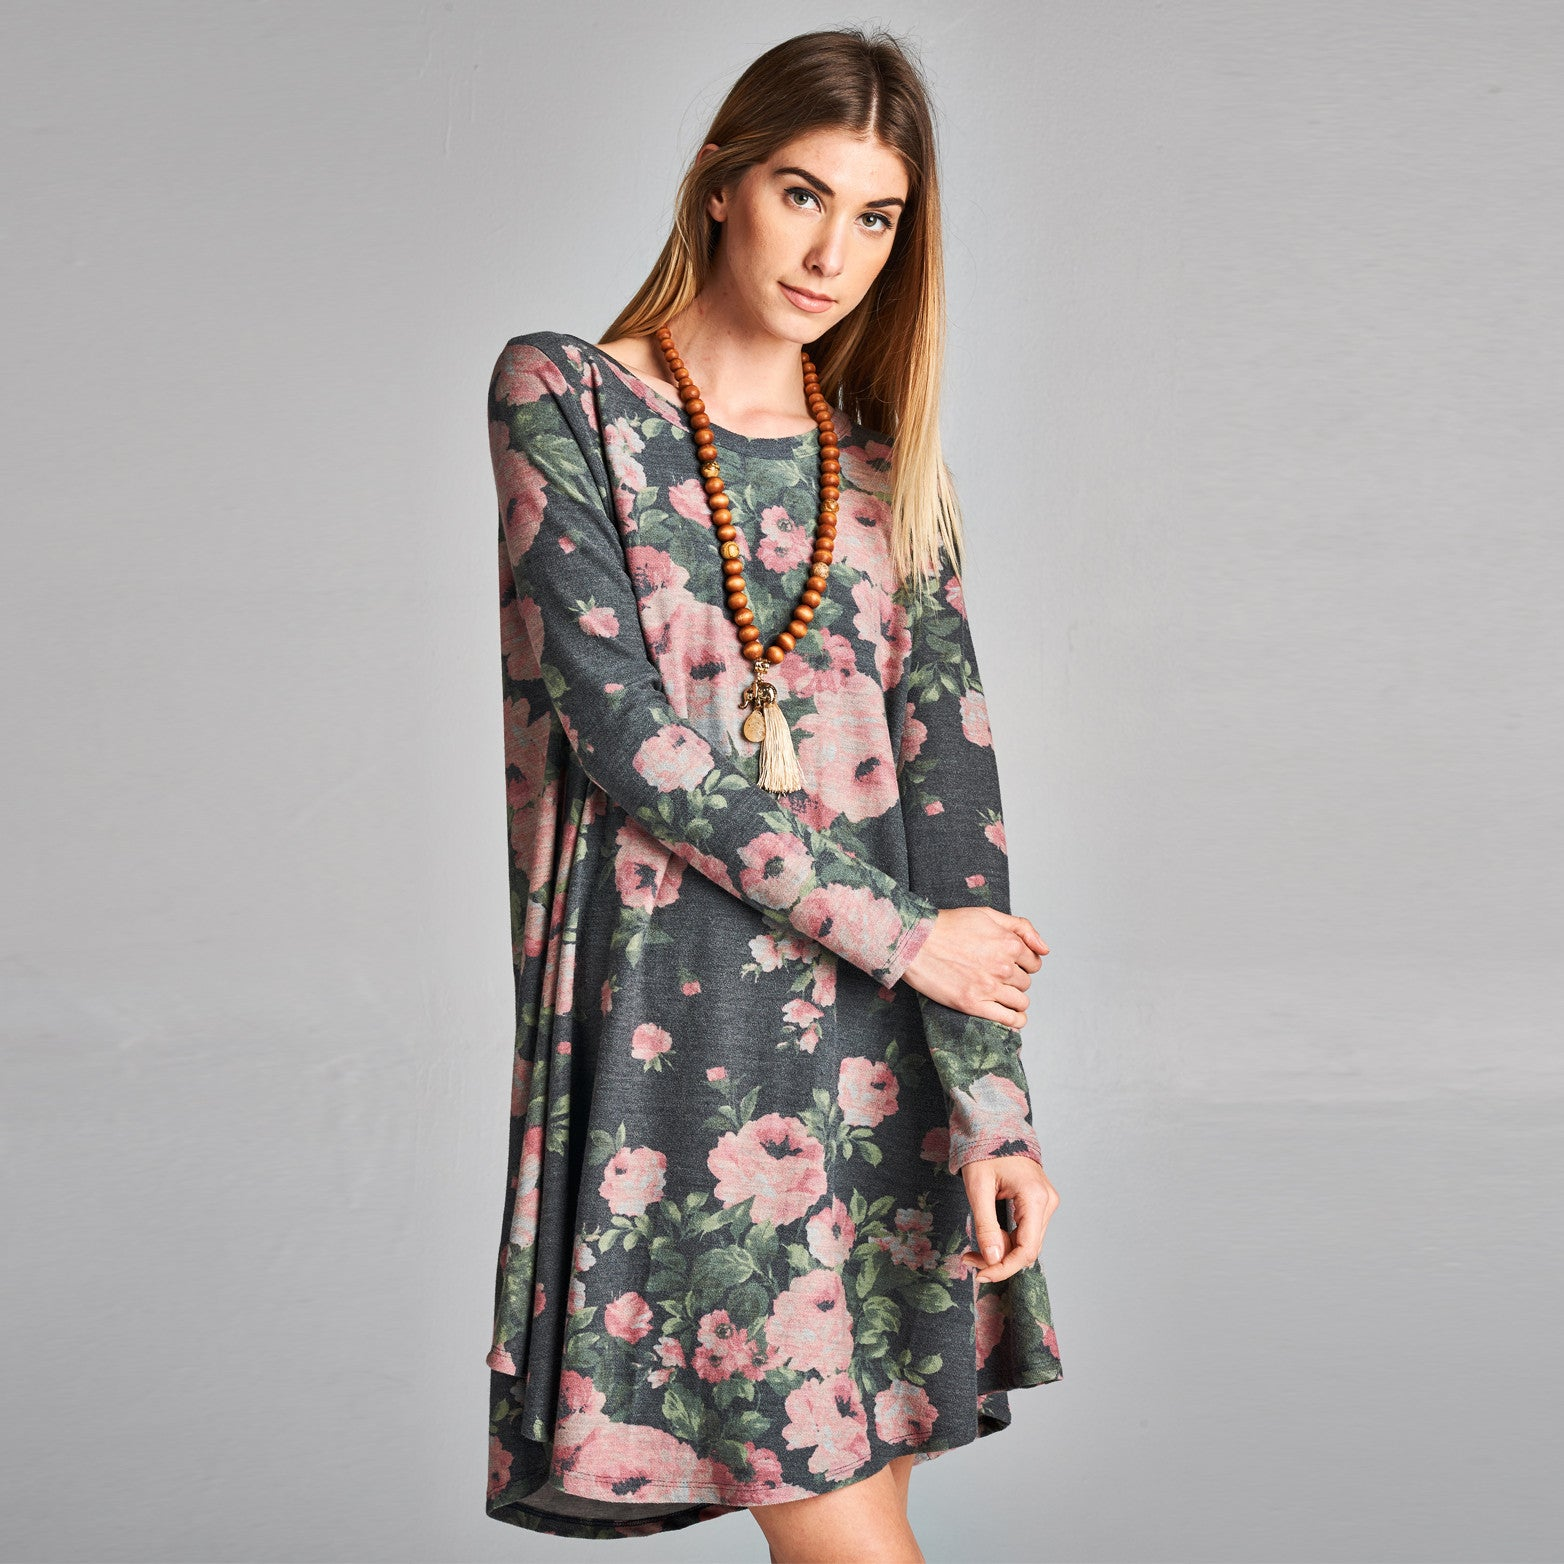 Rosey Everyday Swing Dress